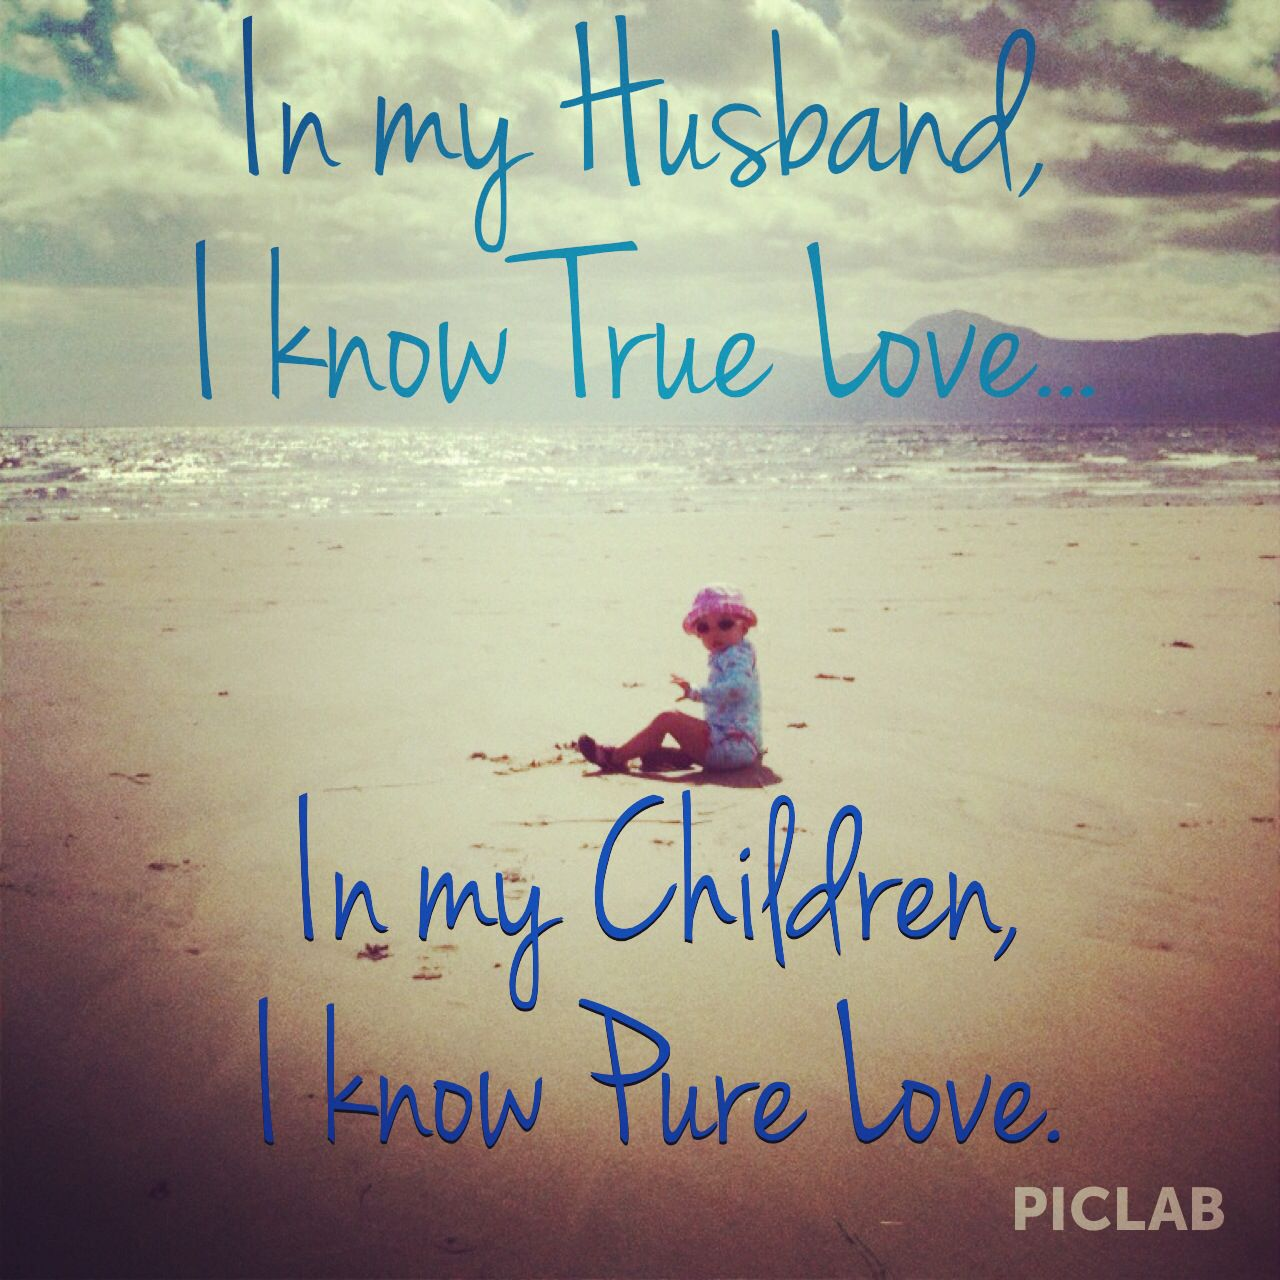 Love Quotes For A Husband Truth  Love Quote Husband & Children In My Husband I Know True